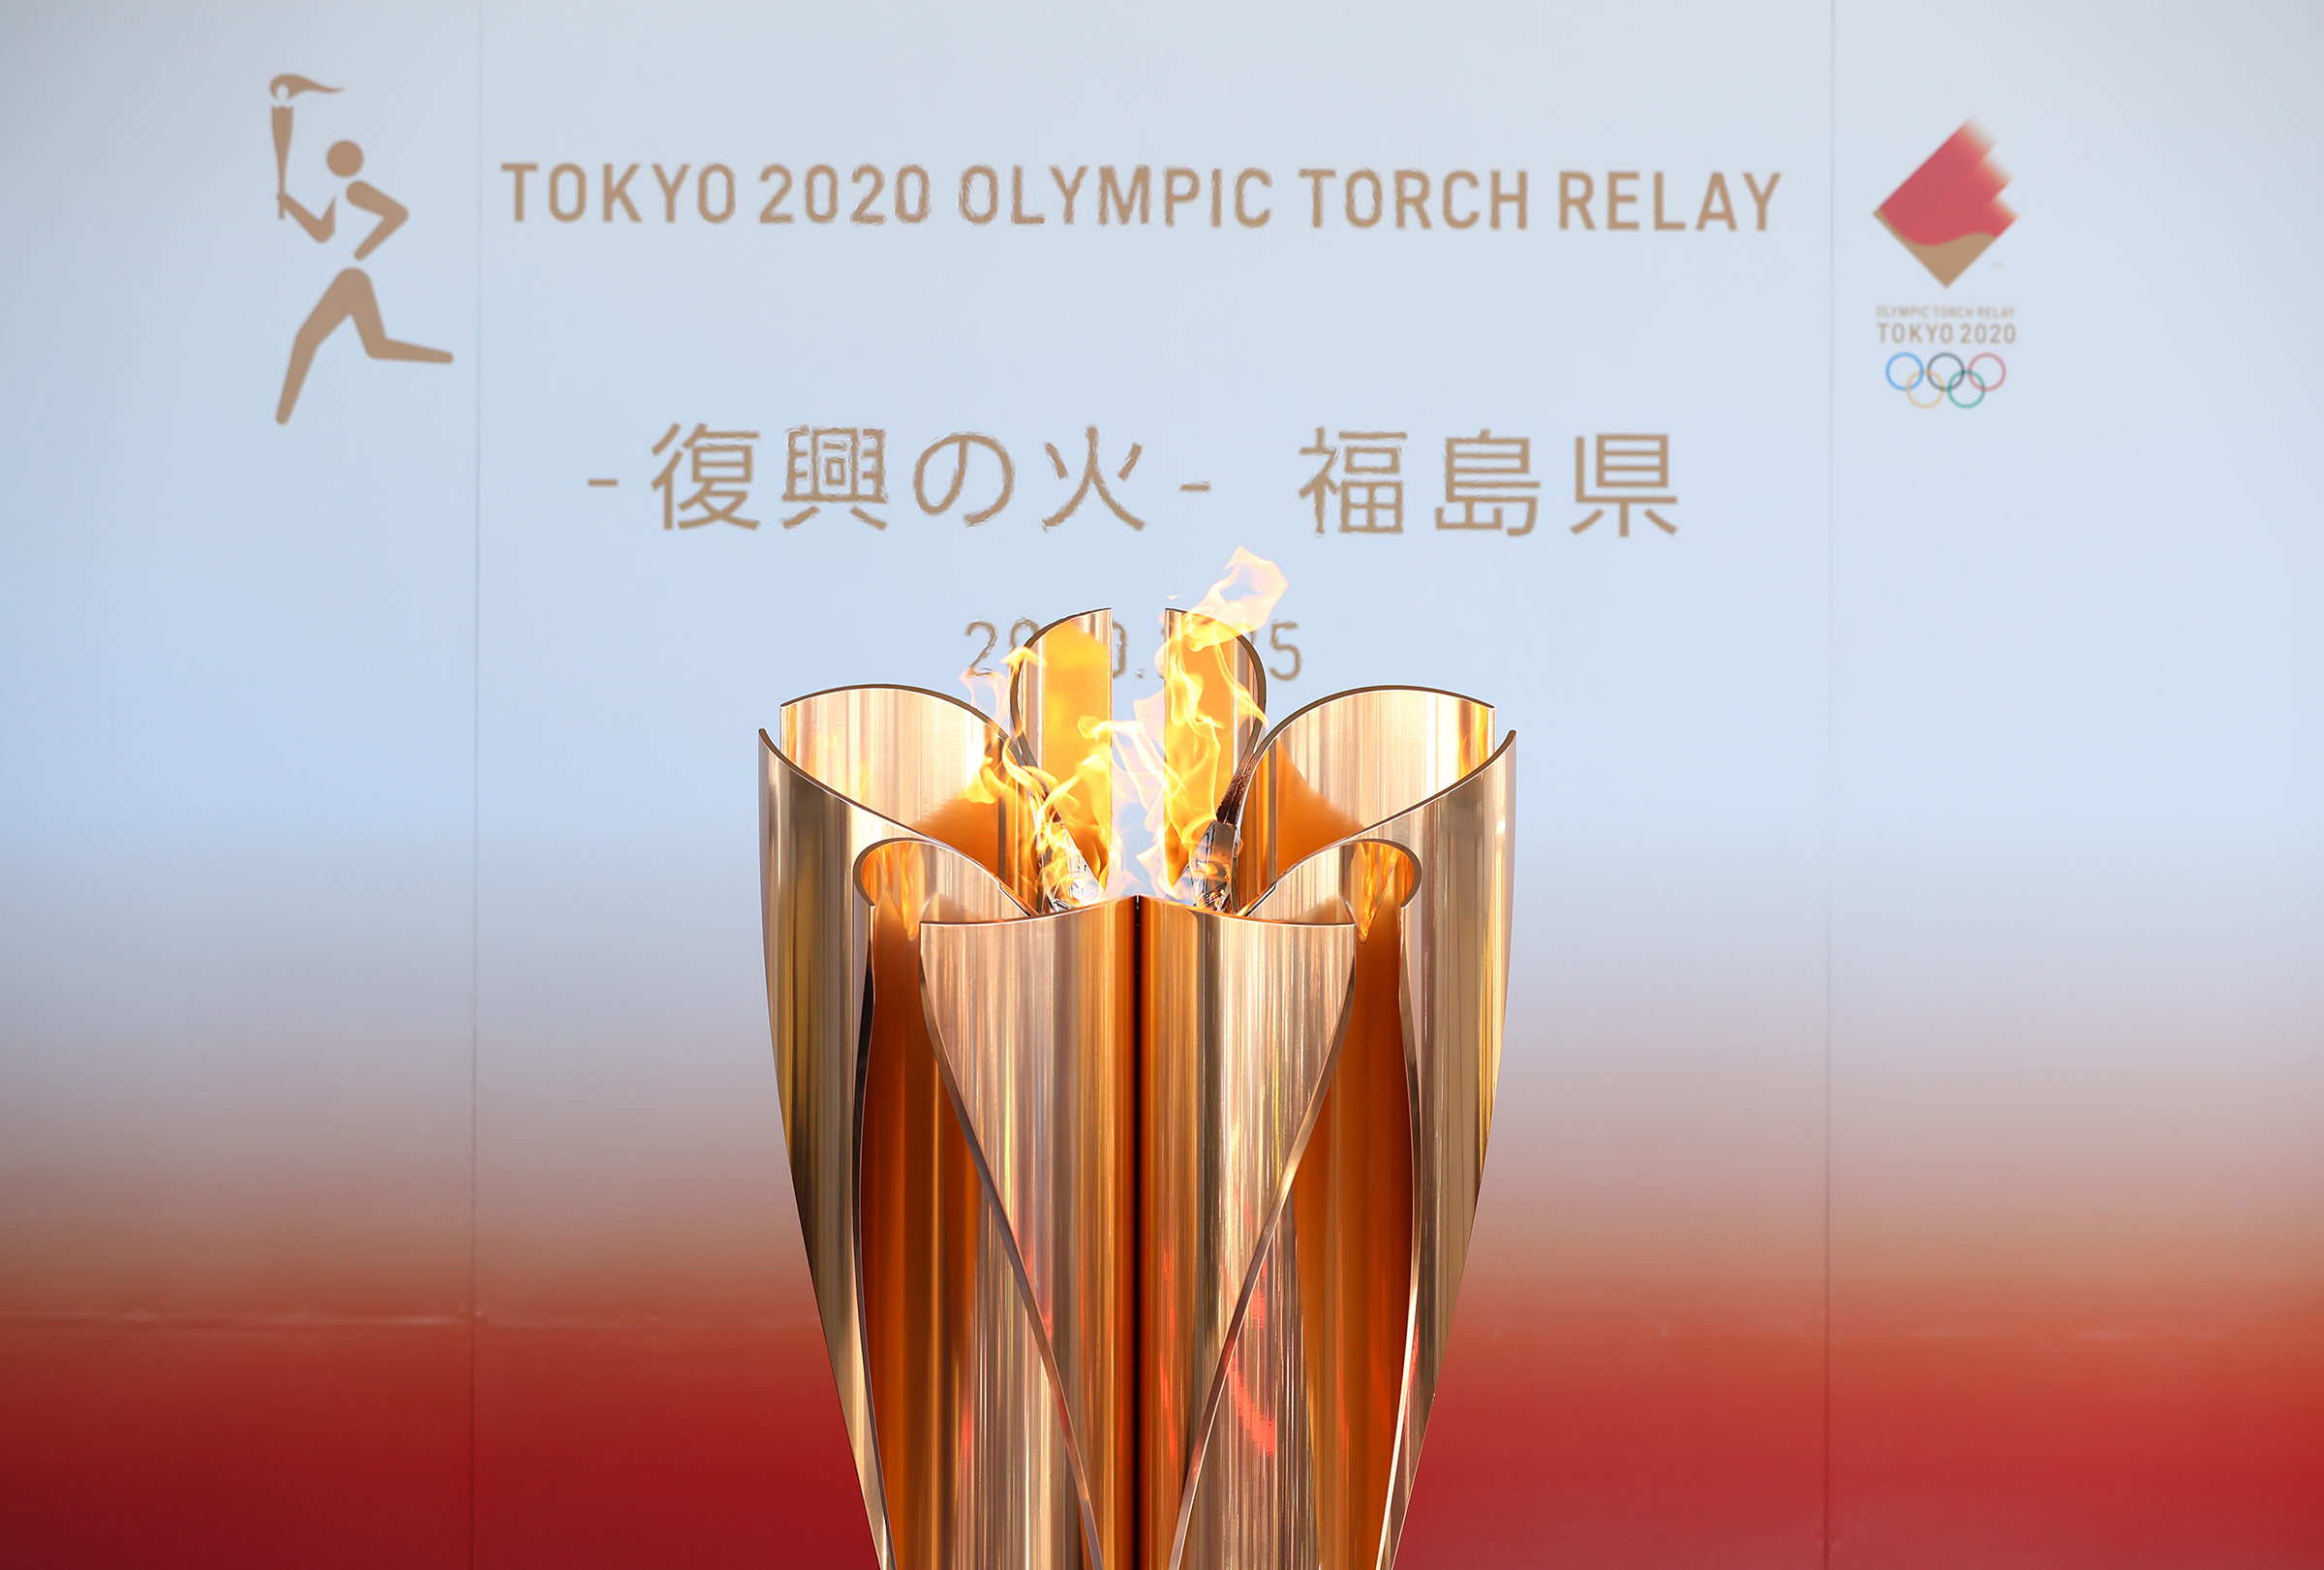 The Olympic cauldron is lit during the 'Flame of Recovery' exhibition on March 25, 2020, in Iwaki, Japan.